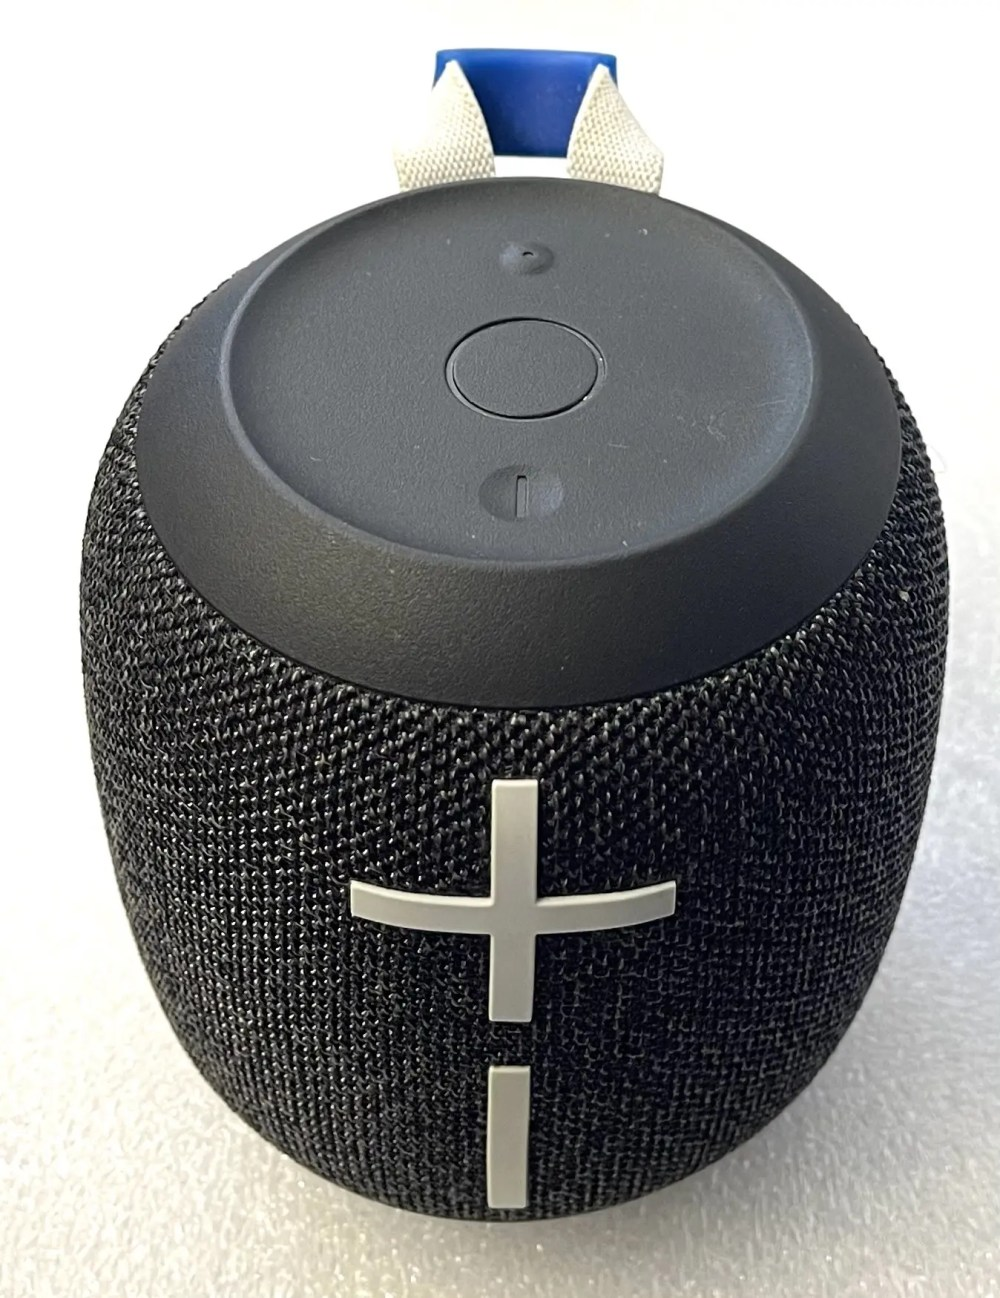 Ultimate Ears WONDERBOOM 2 Portable Bluetooth Speaker (Deep Space) (984-001547)